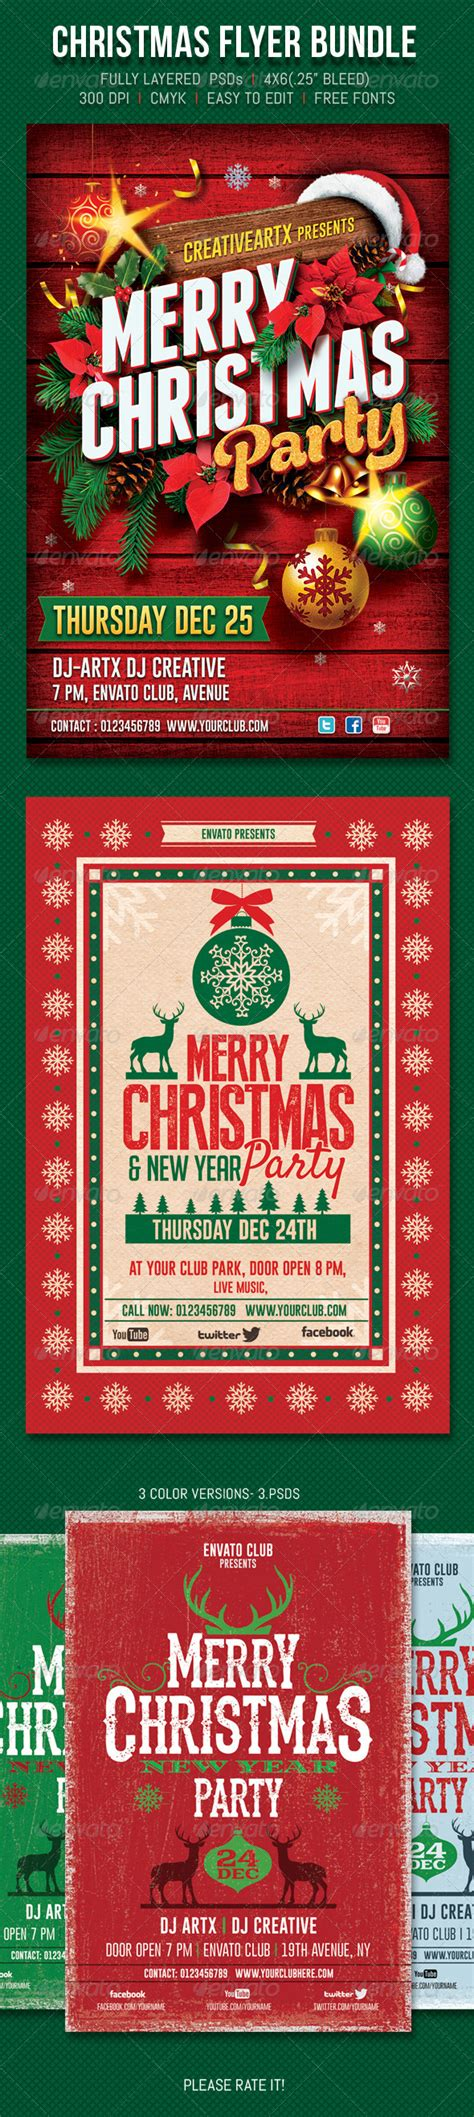 dafont gobold christmas flyer bundle events flyers